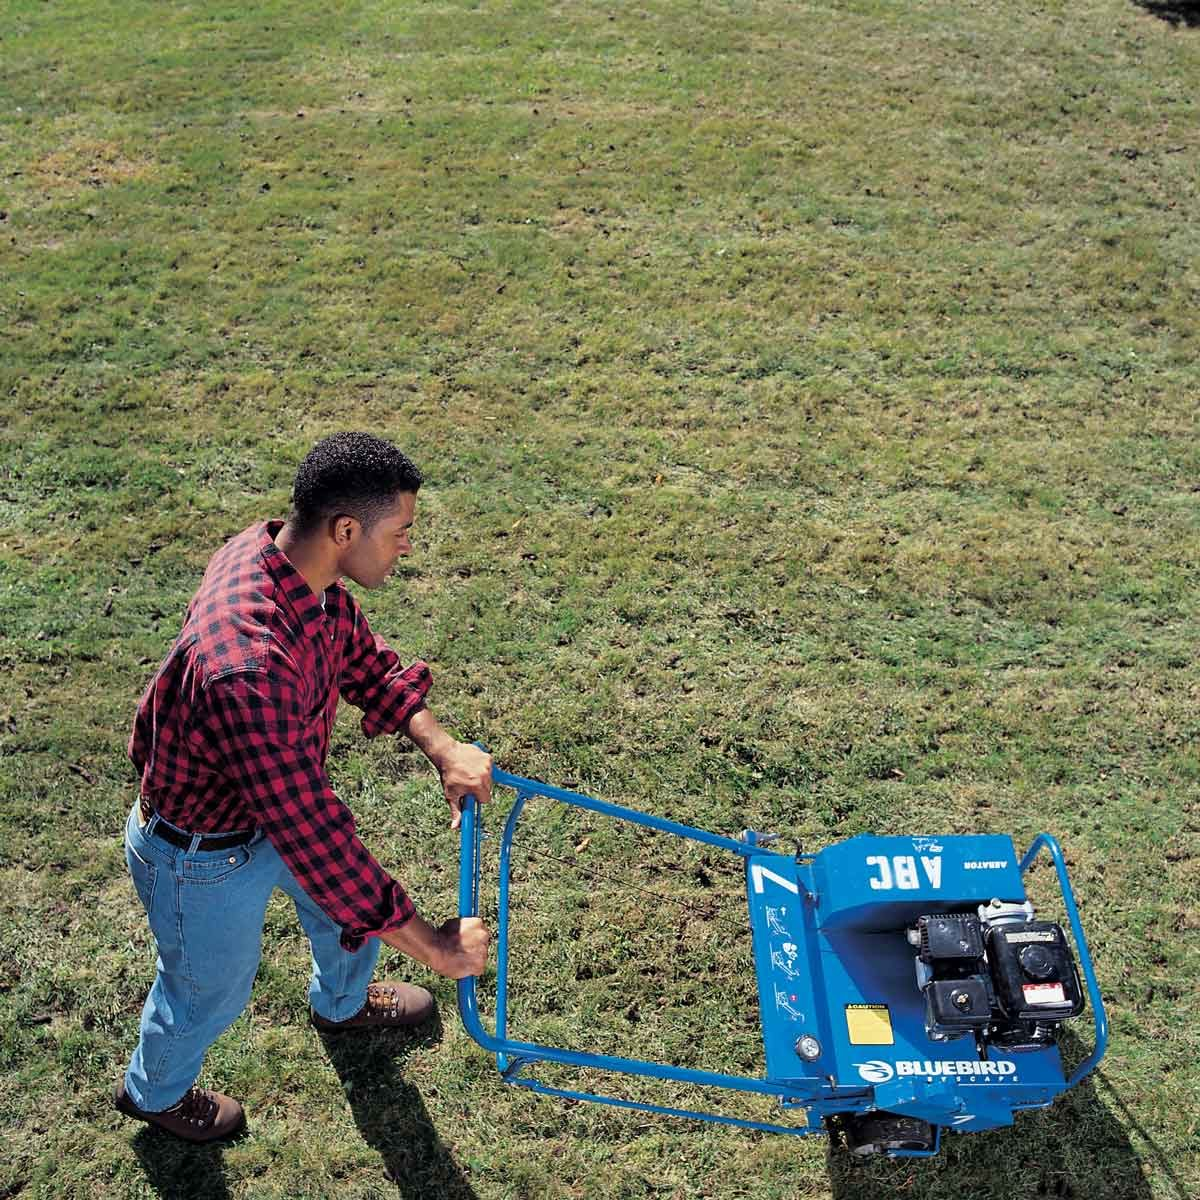 thinning lawn